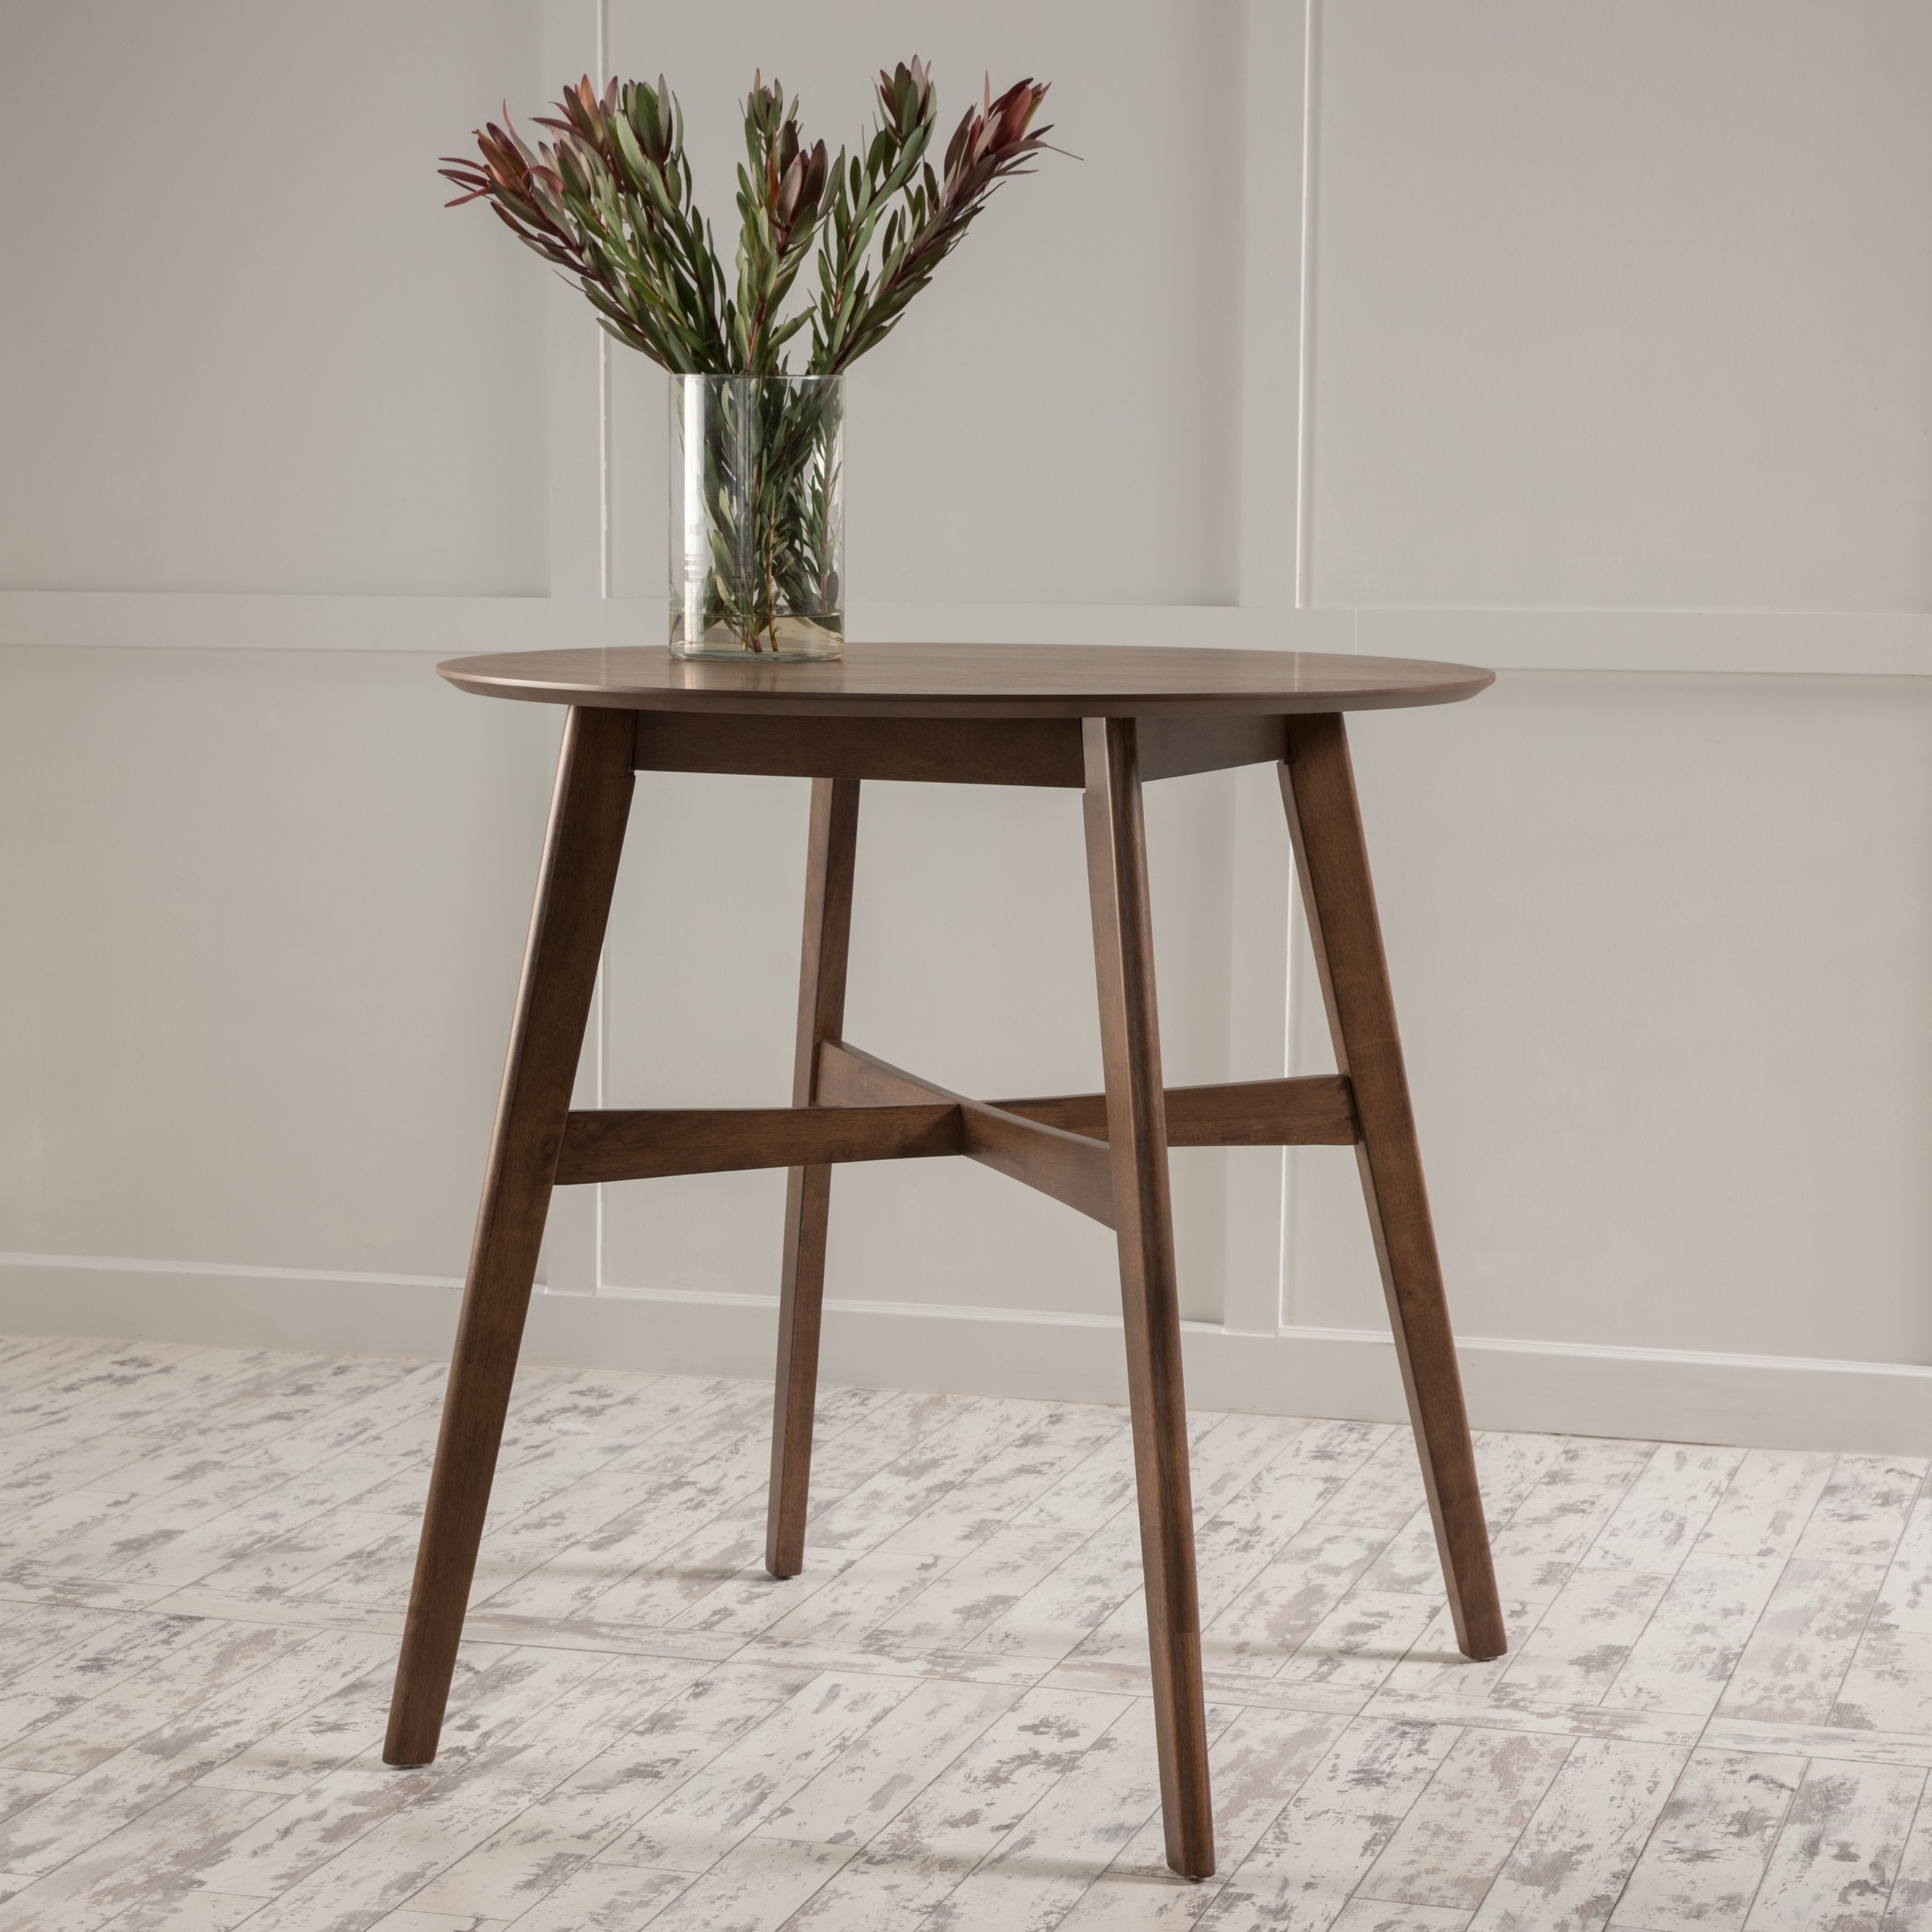 Most Current Gavin 7 Piece Dining Sets With Clint Side Chairs Intended For Shop Gavin Wood Counter Height Tablechristopher Knight Home (View 10 of 25)